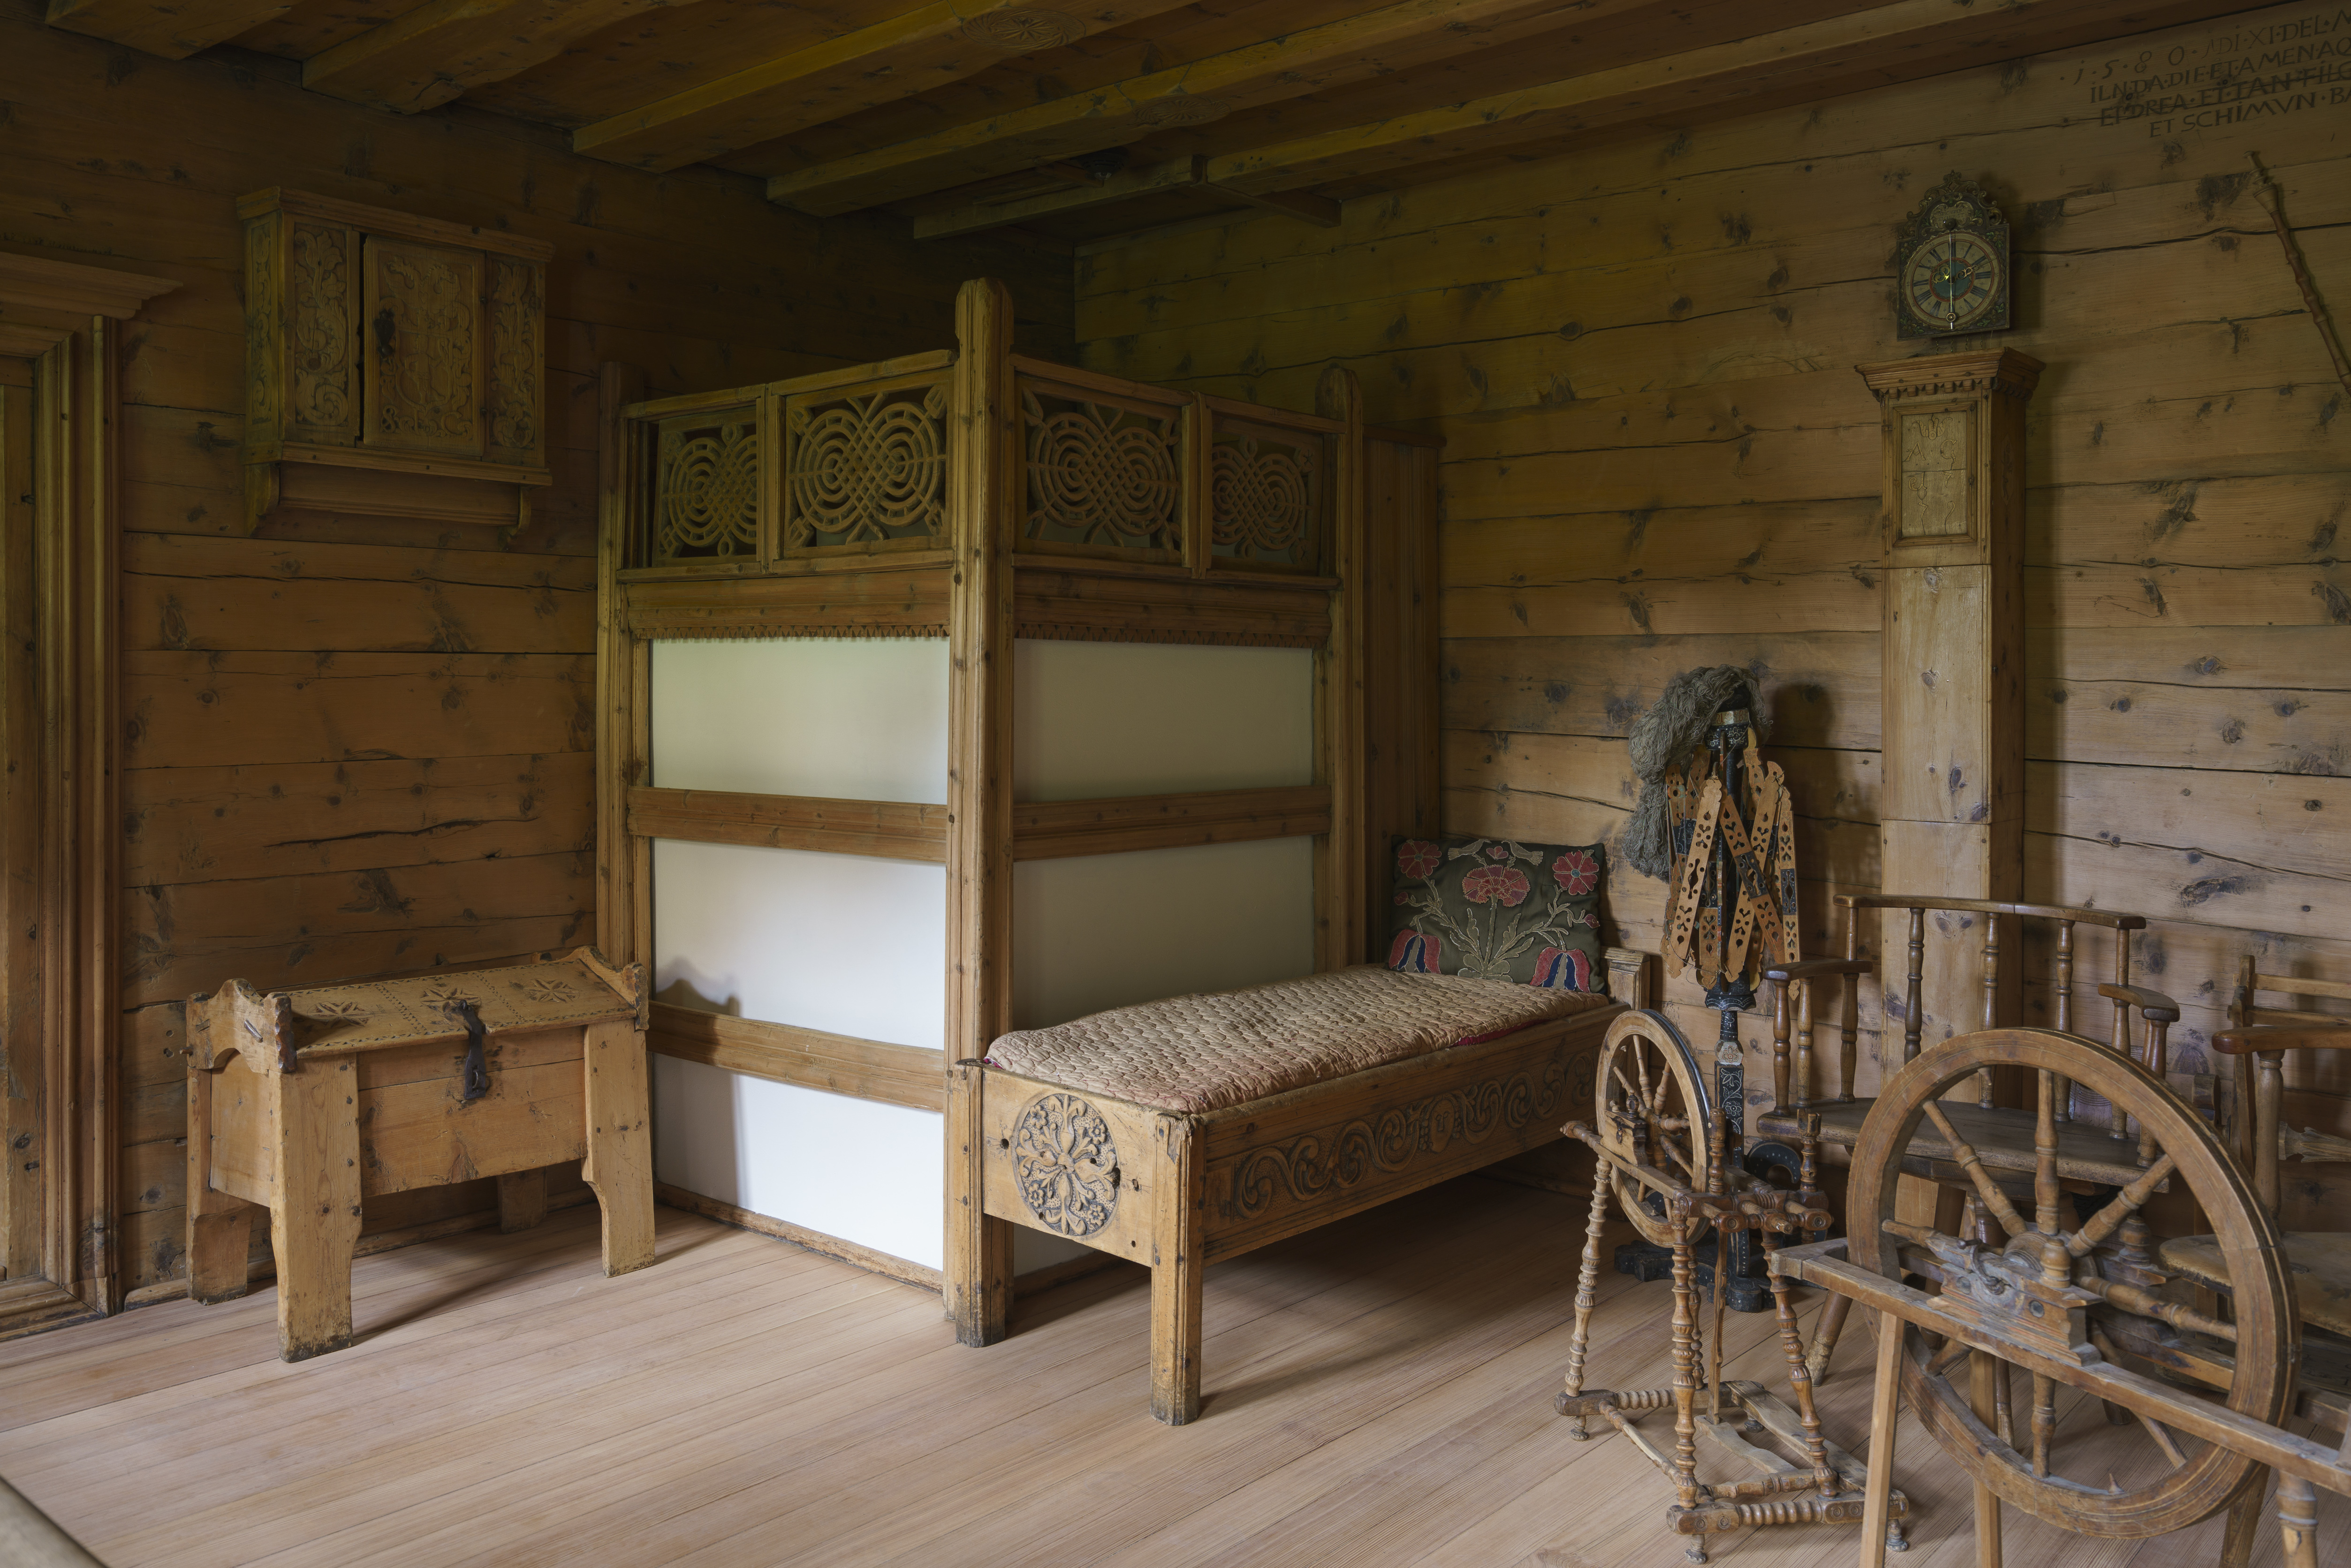 Guided tour of the Engiadinais Museum: 500 years of Engadine home culture